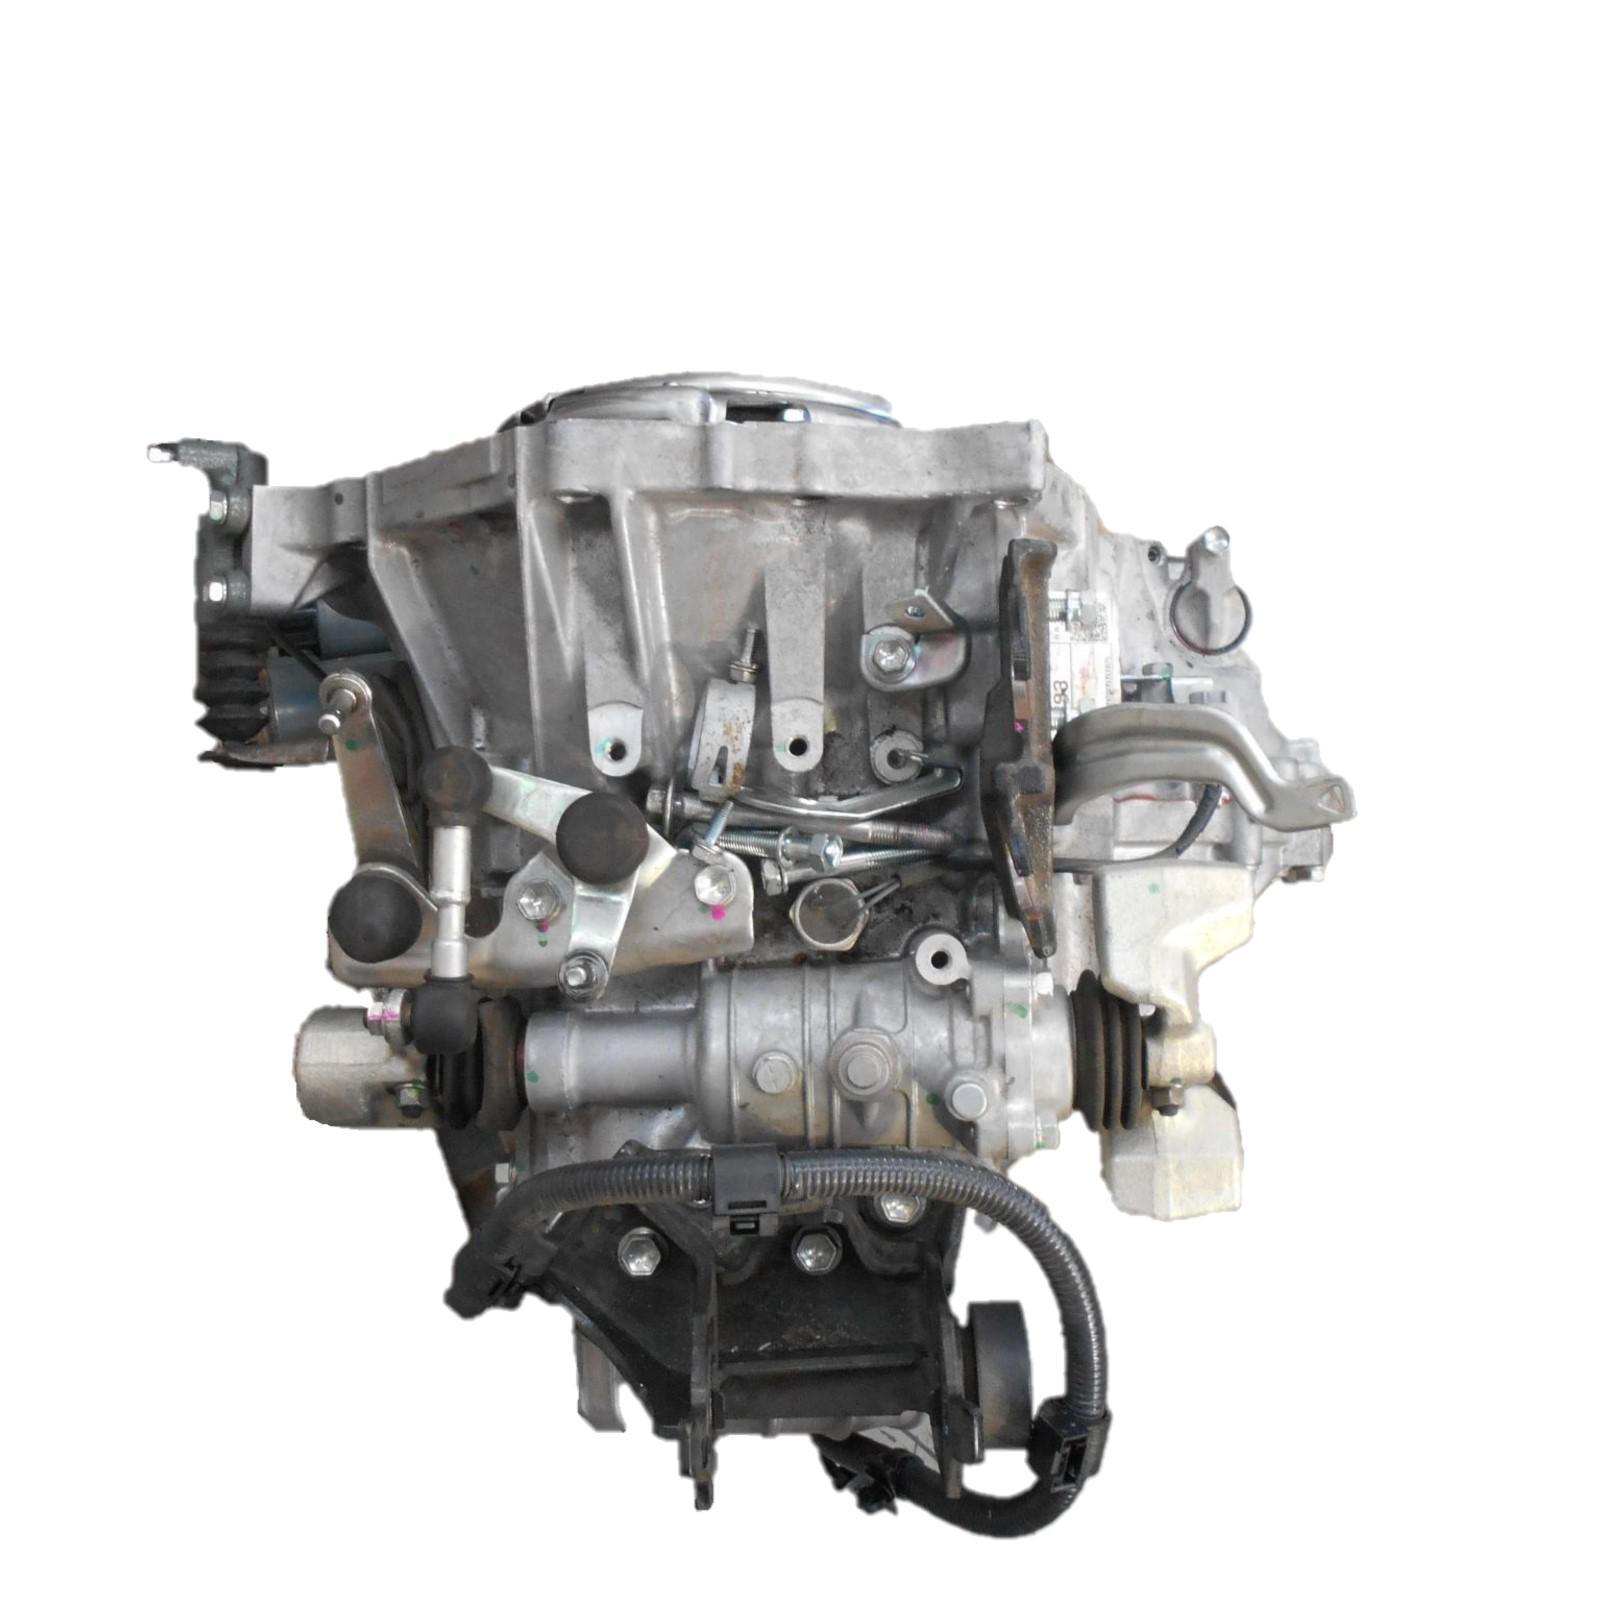 TOYOTA YARIS, Trans/Gearbox, MANUAL, 1.3, 2NZ, NCP9#-NCP13#, 10/05- (AUS ONLY)